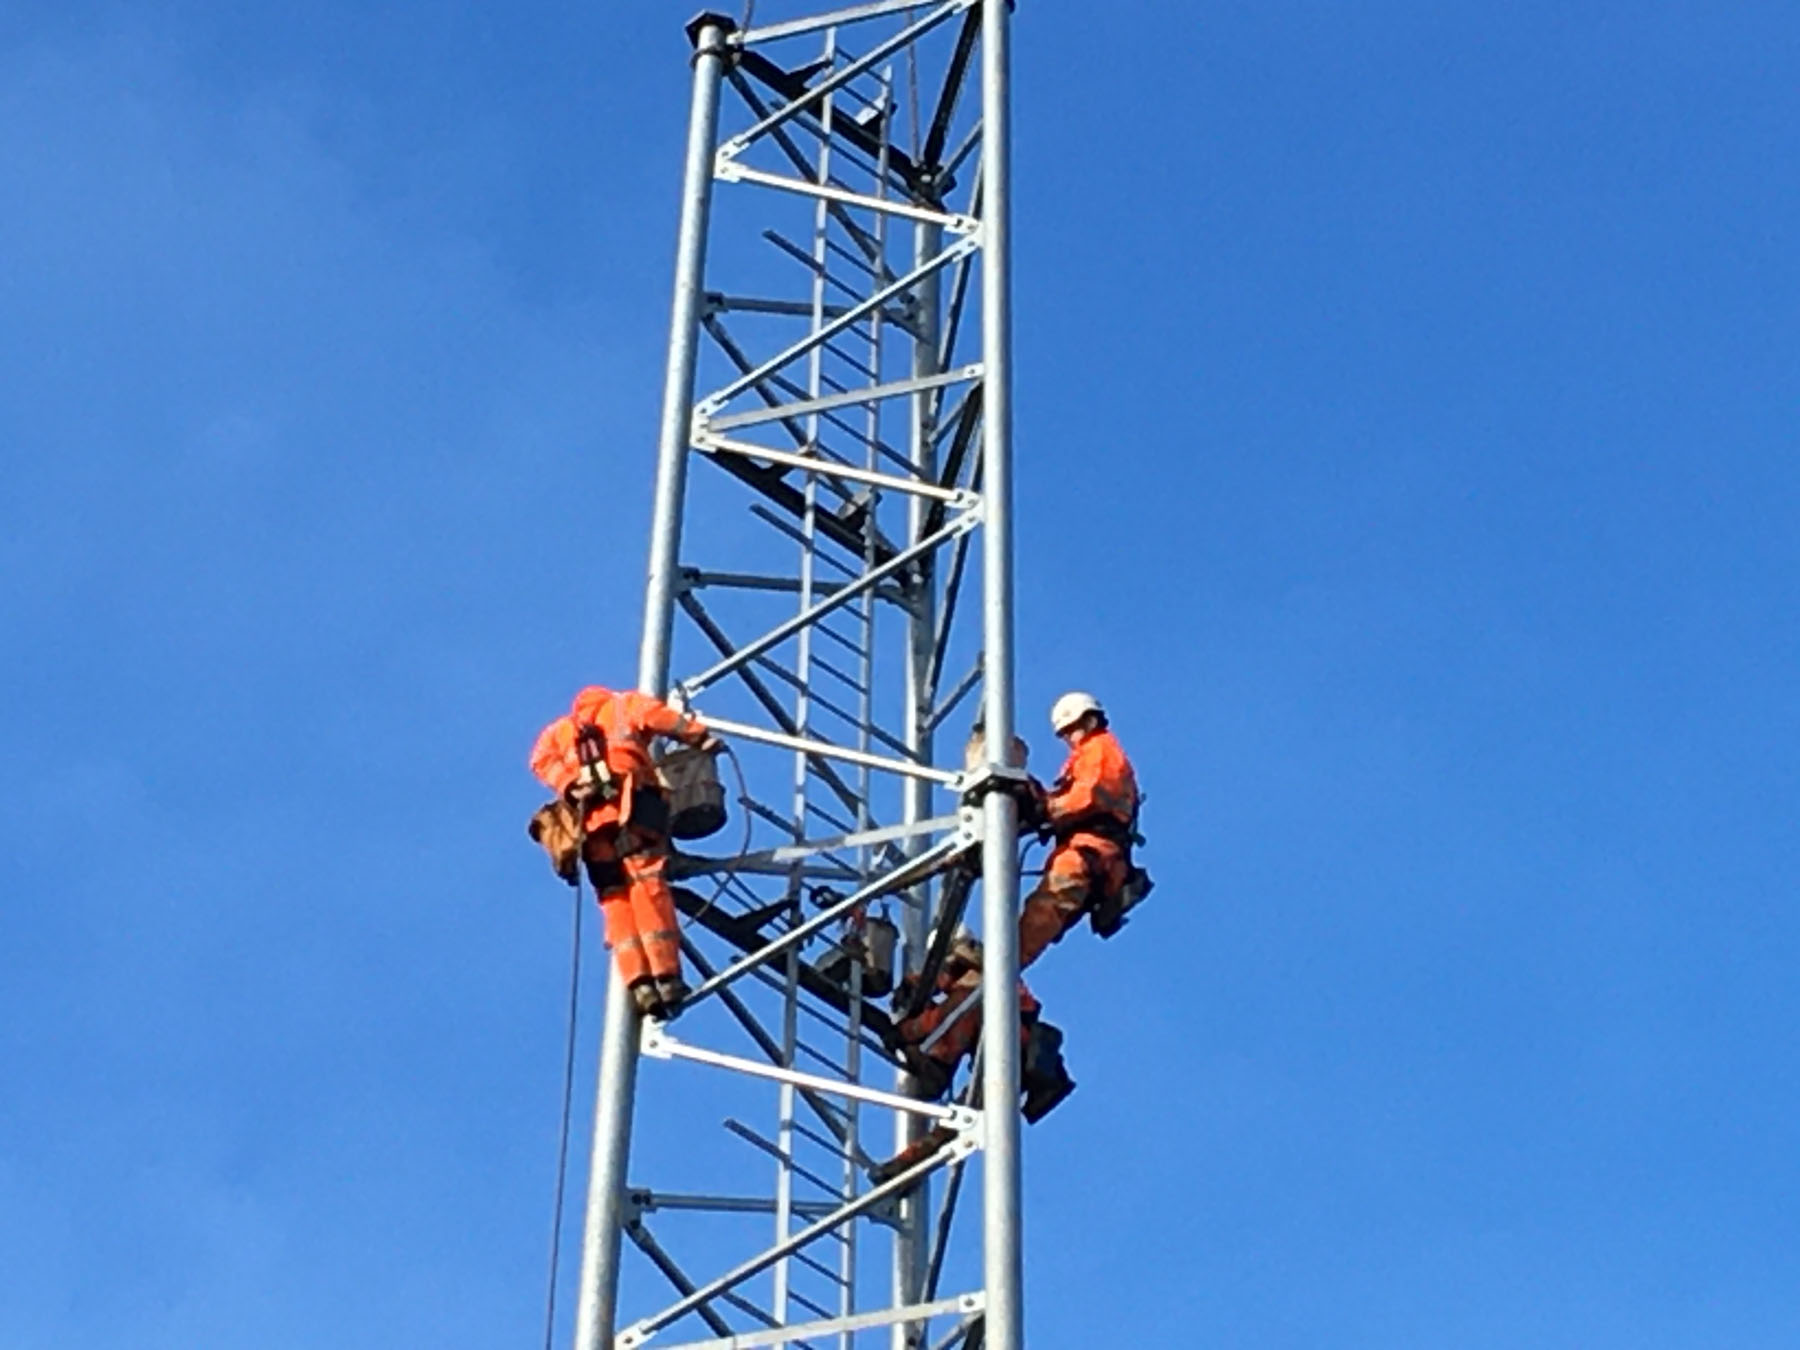 engineers climbing a mobile tower